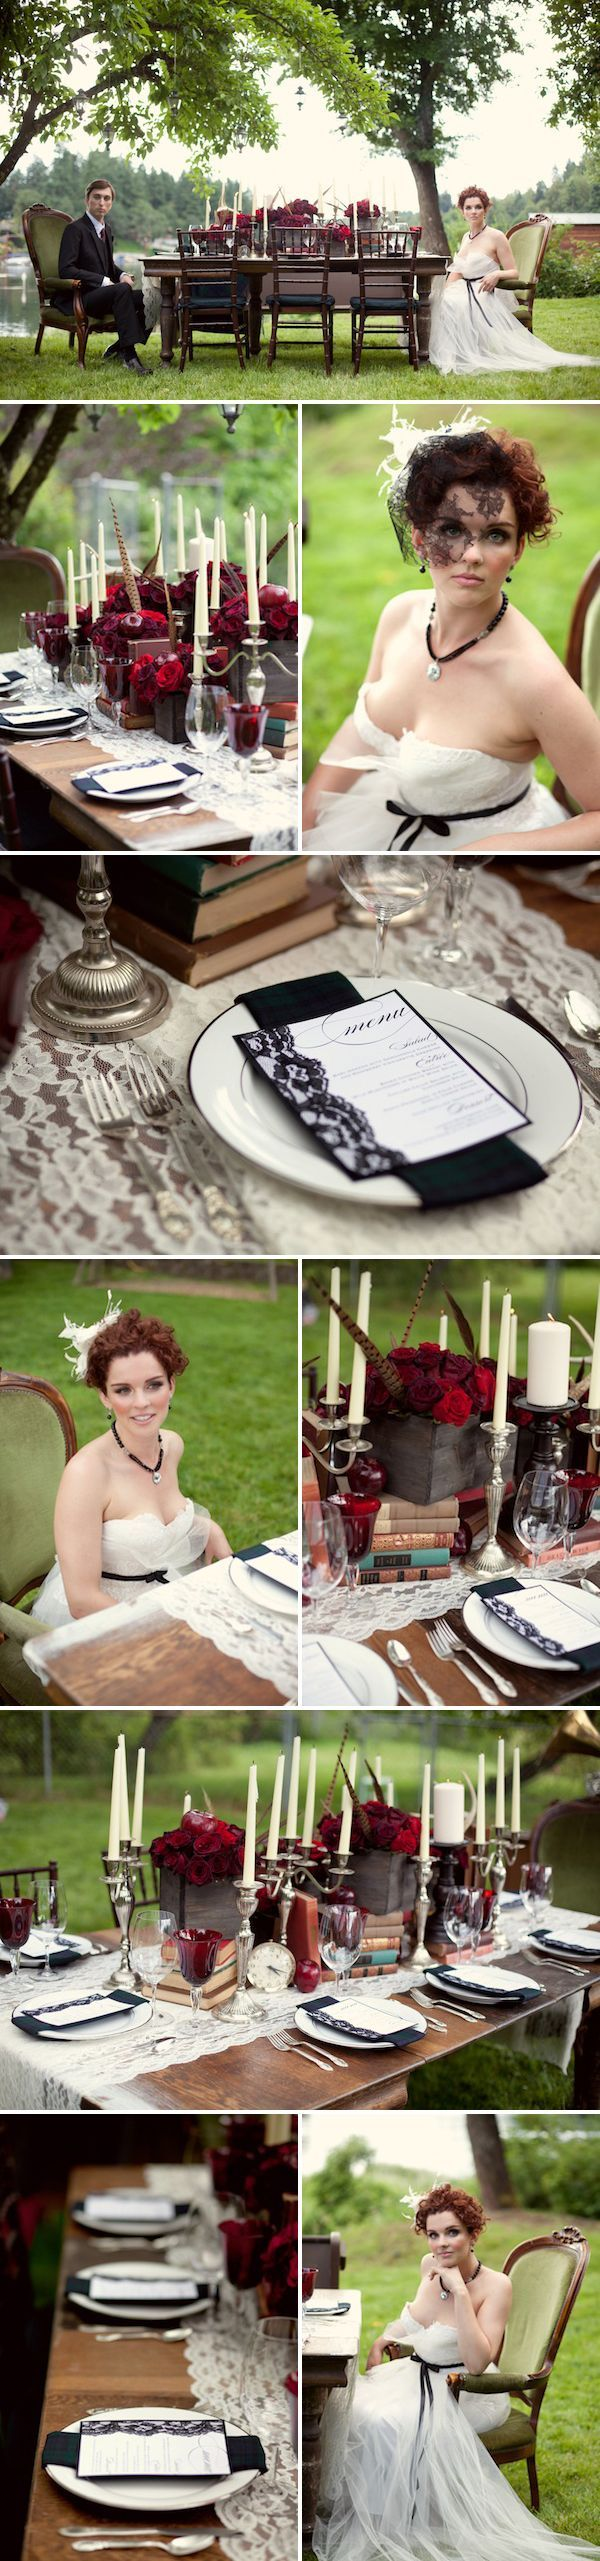 Knotty Bride post - Black veil, love the elaborate table set up and cake